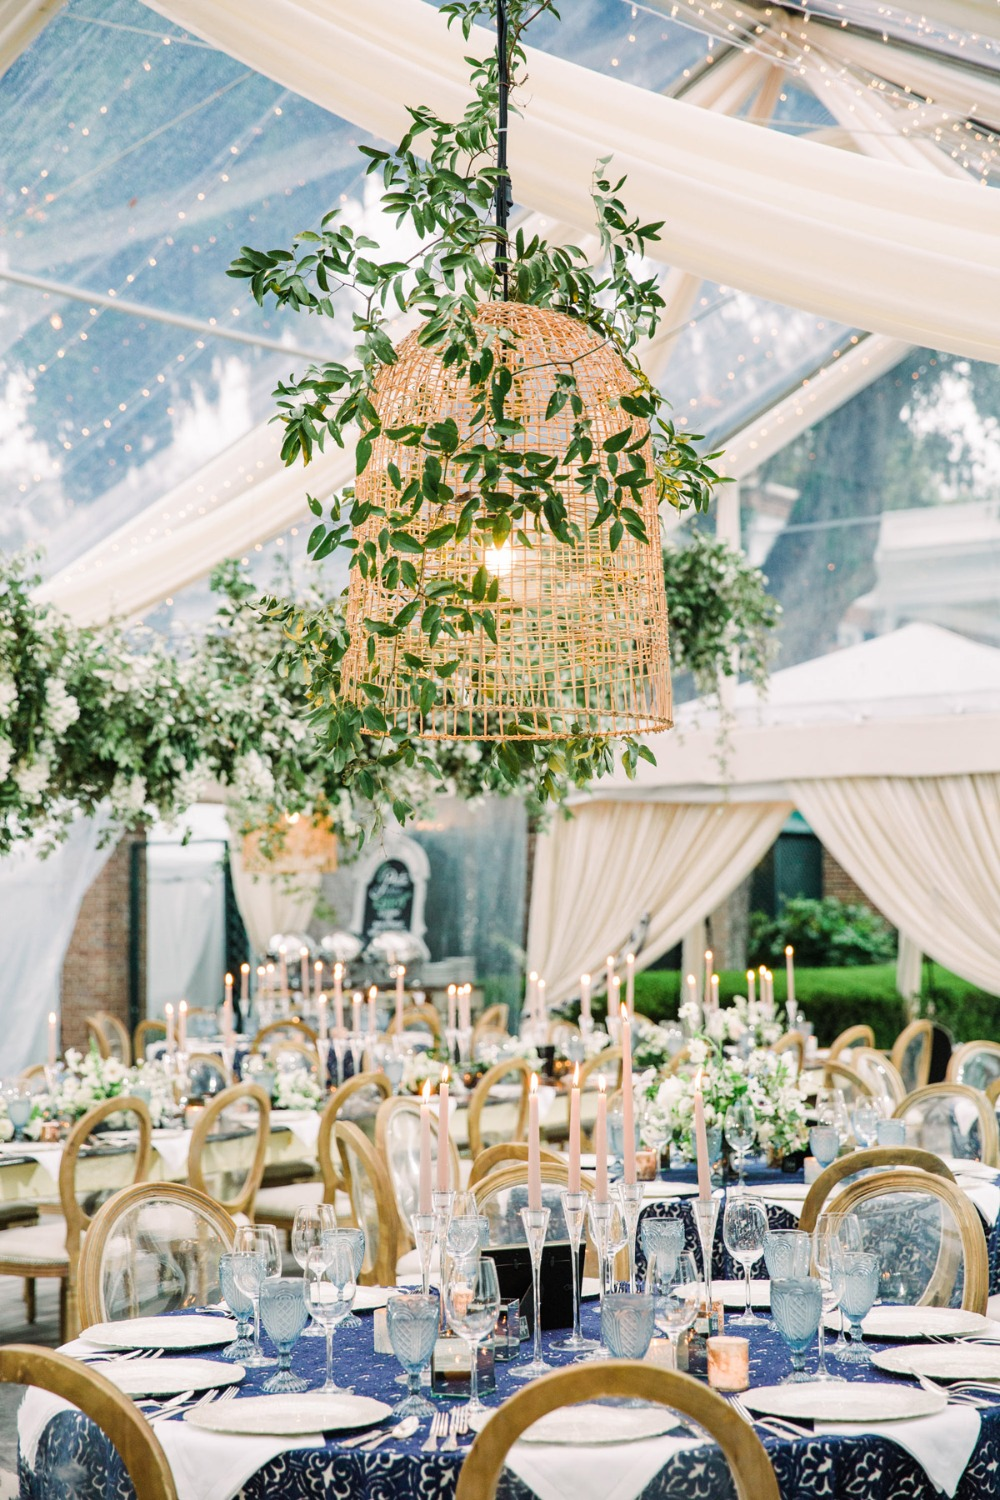 Dreamy wedding reception decor